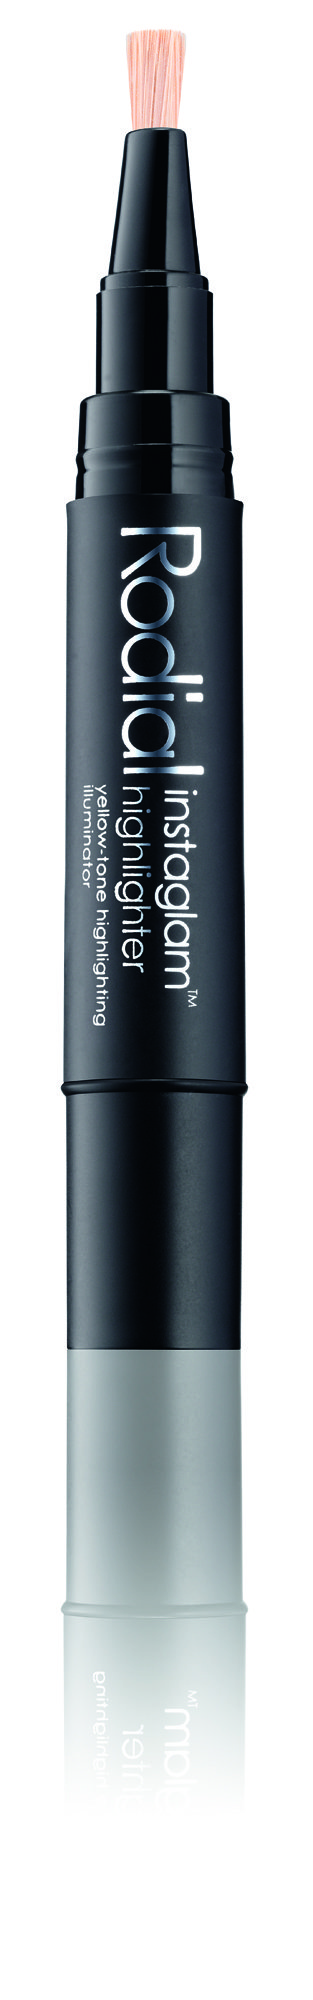 Rodial Instaglam Highlighter